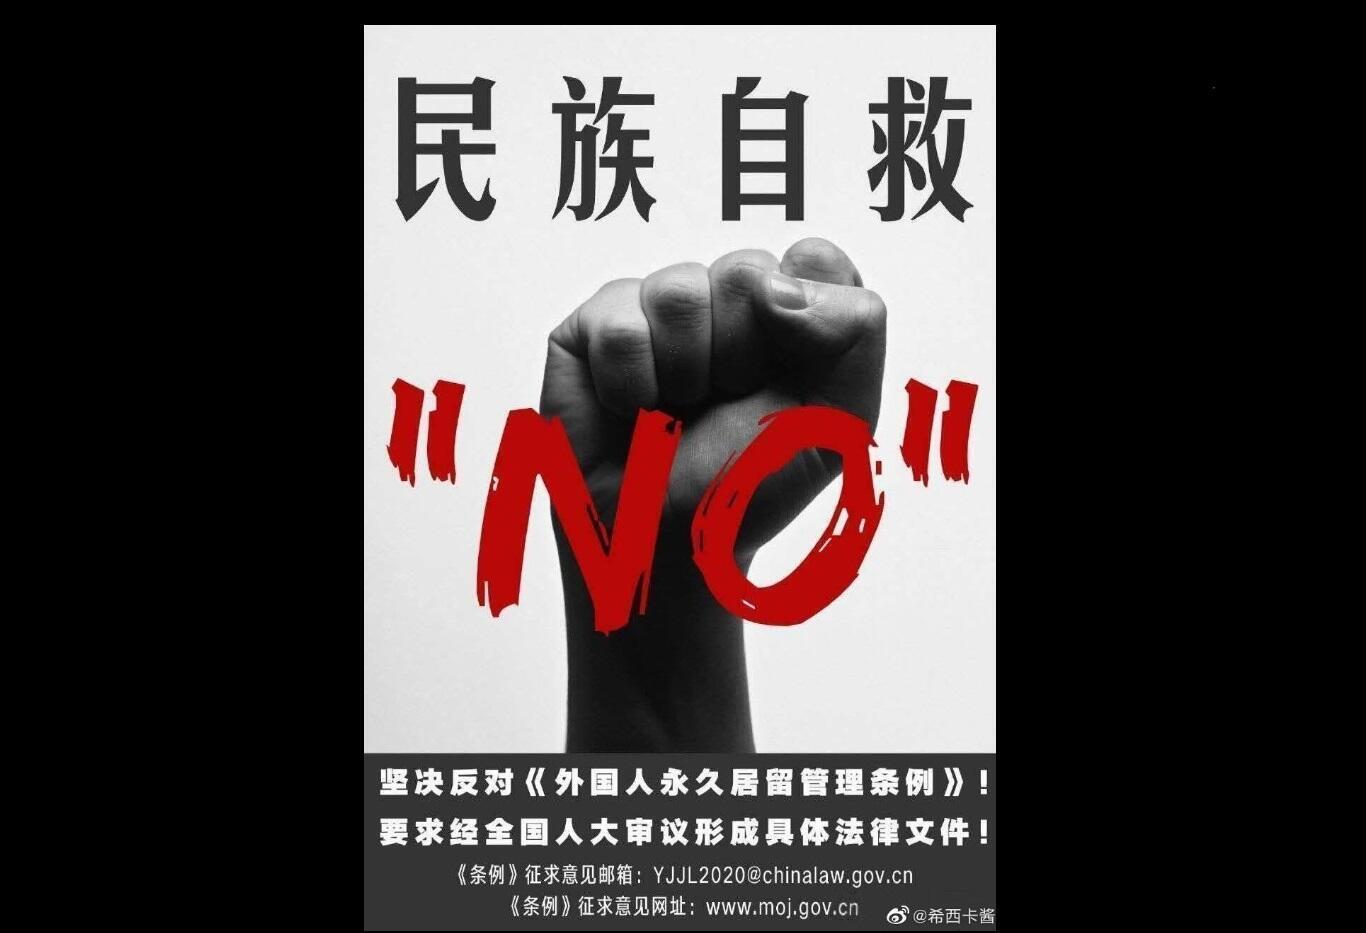 """""""Save the Nation - NO"""" to a law that makes it easy for foreigners to obtain long-term residence permits in China. The poster tells foreigners to use existing legislation."""